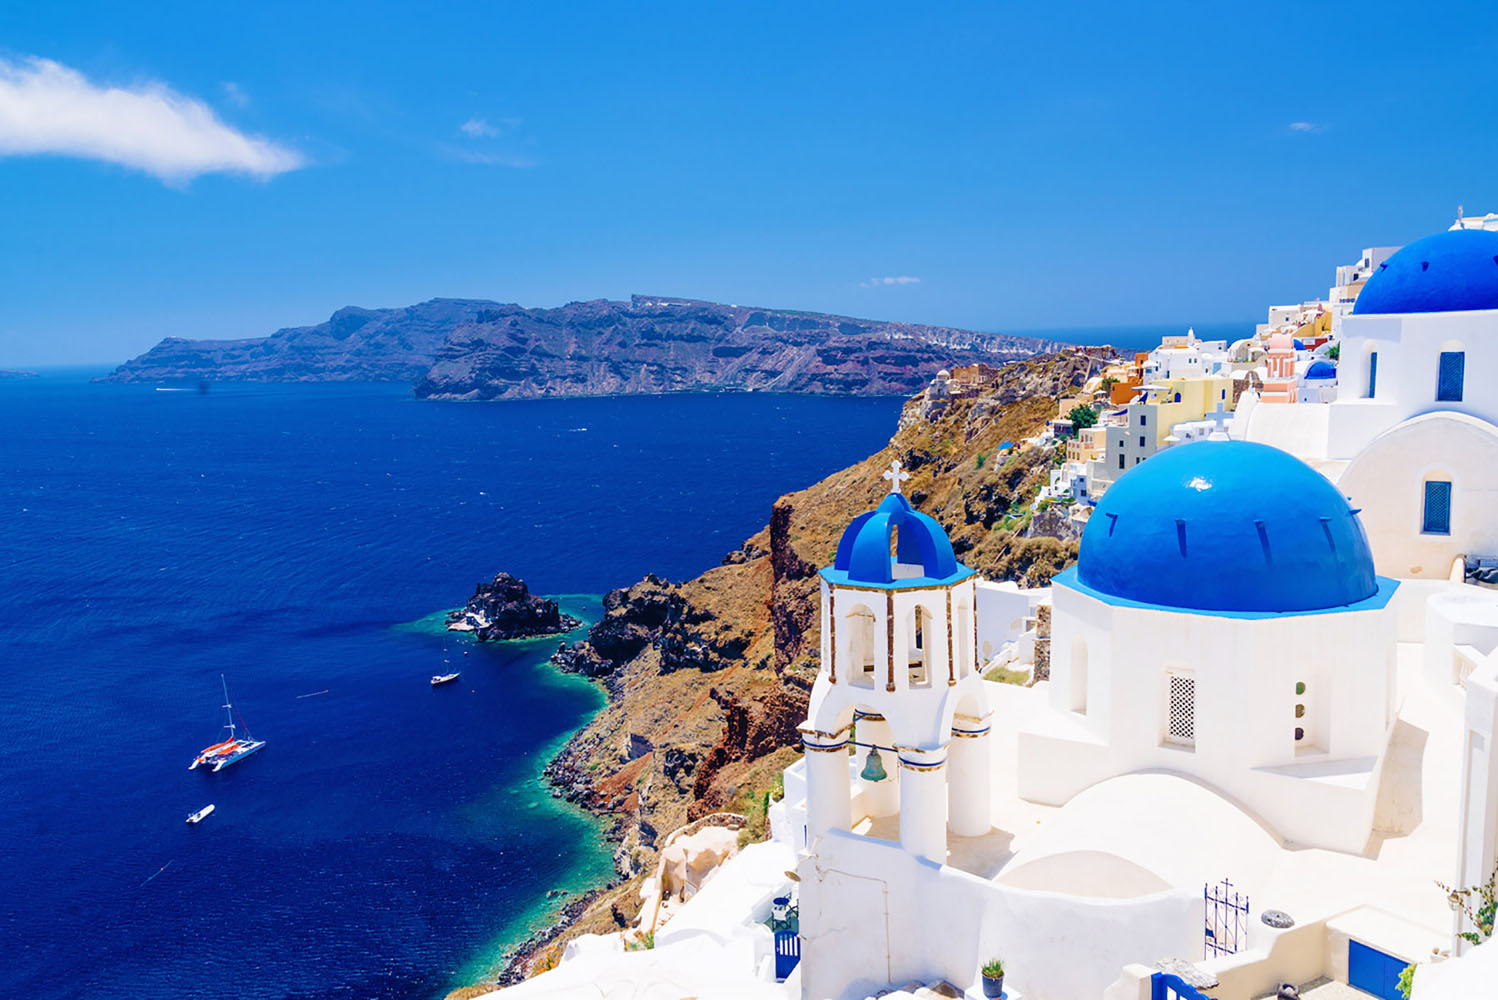 A stunning view of Santorini Greece, one of the Greek Isles